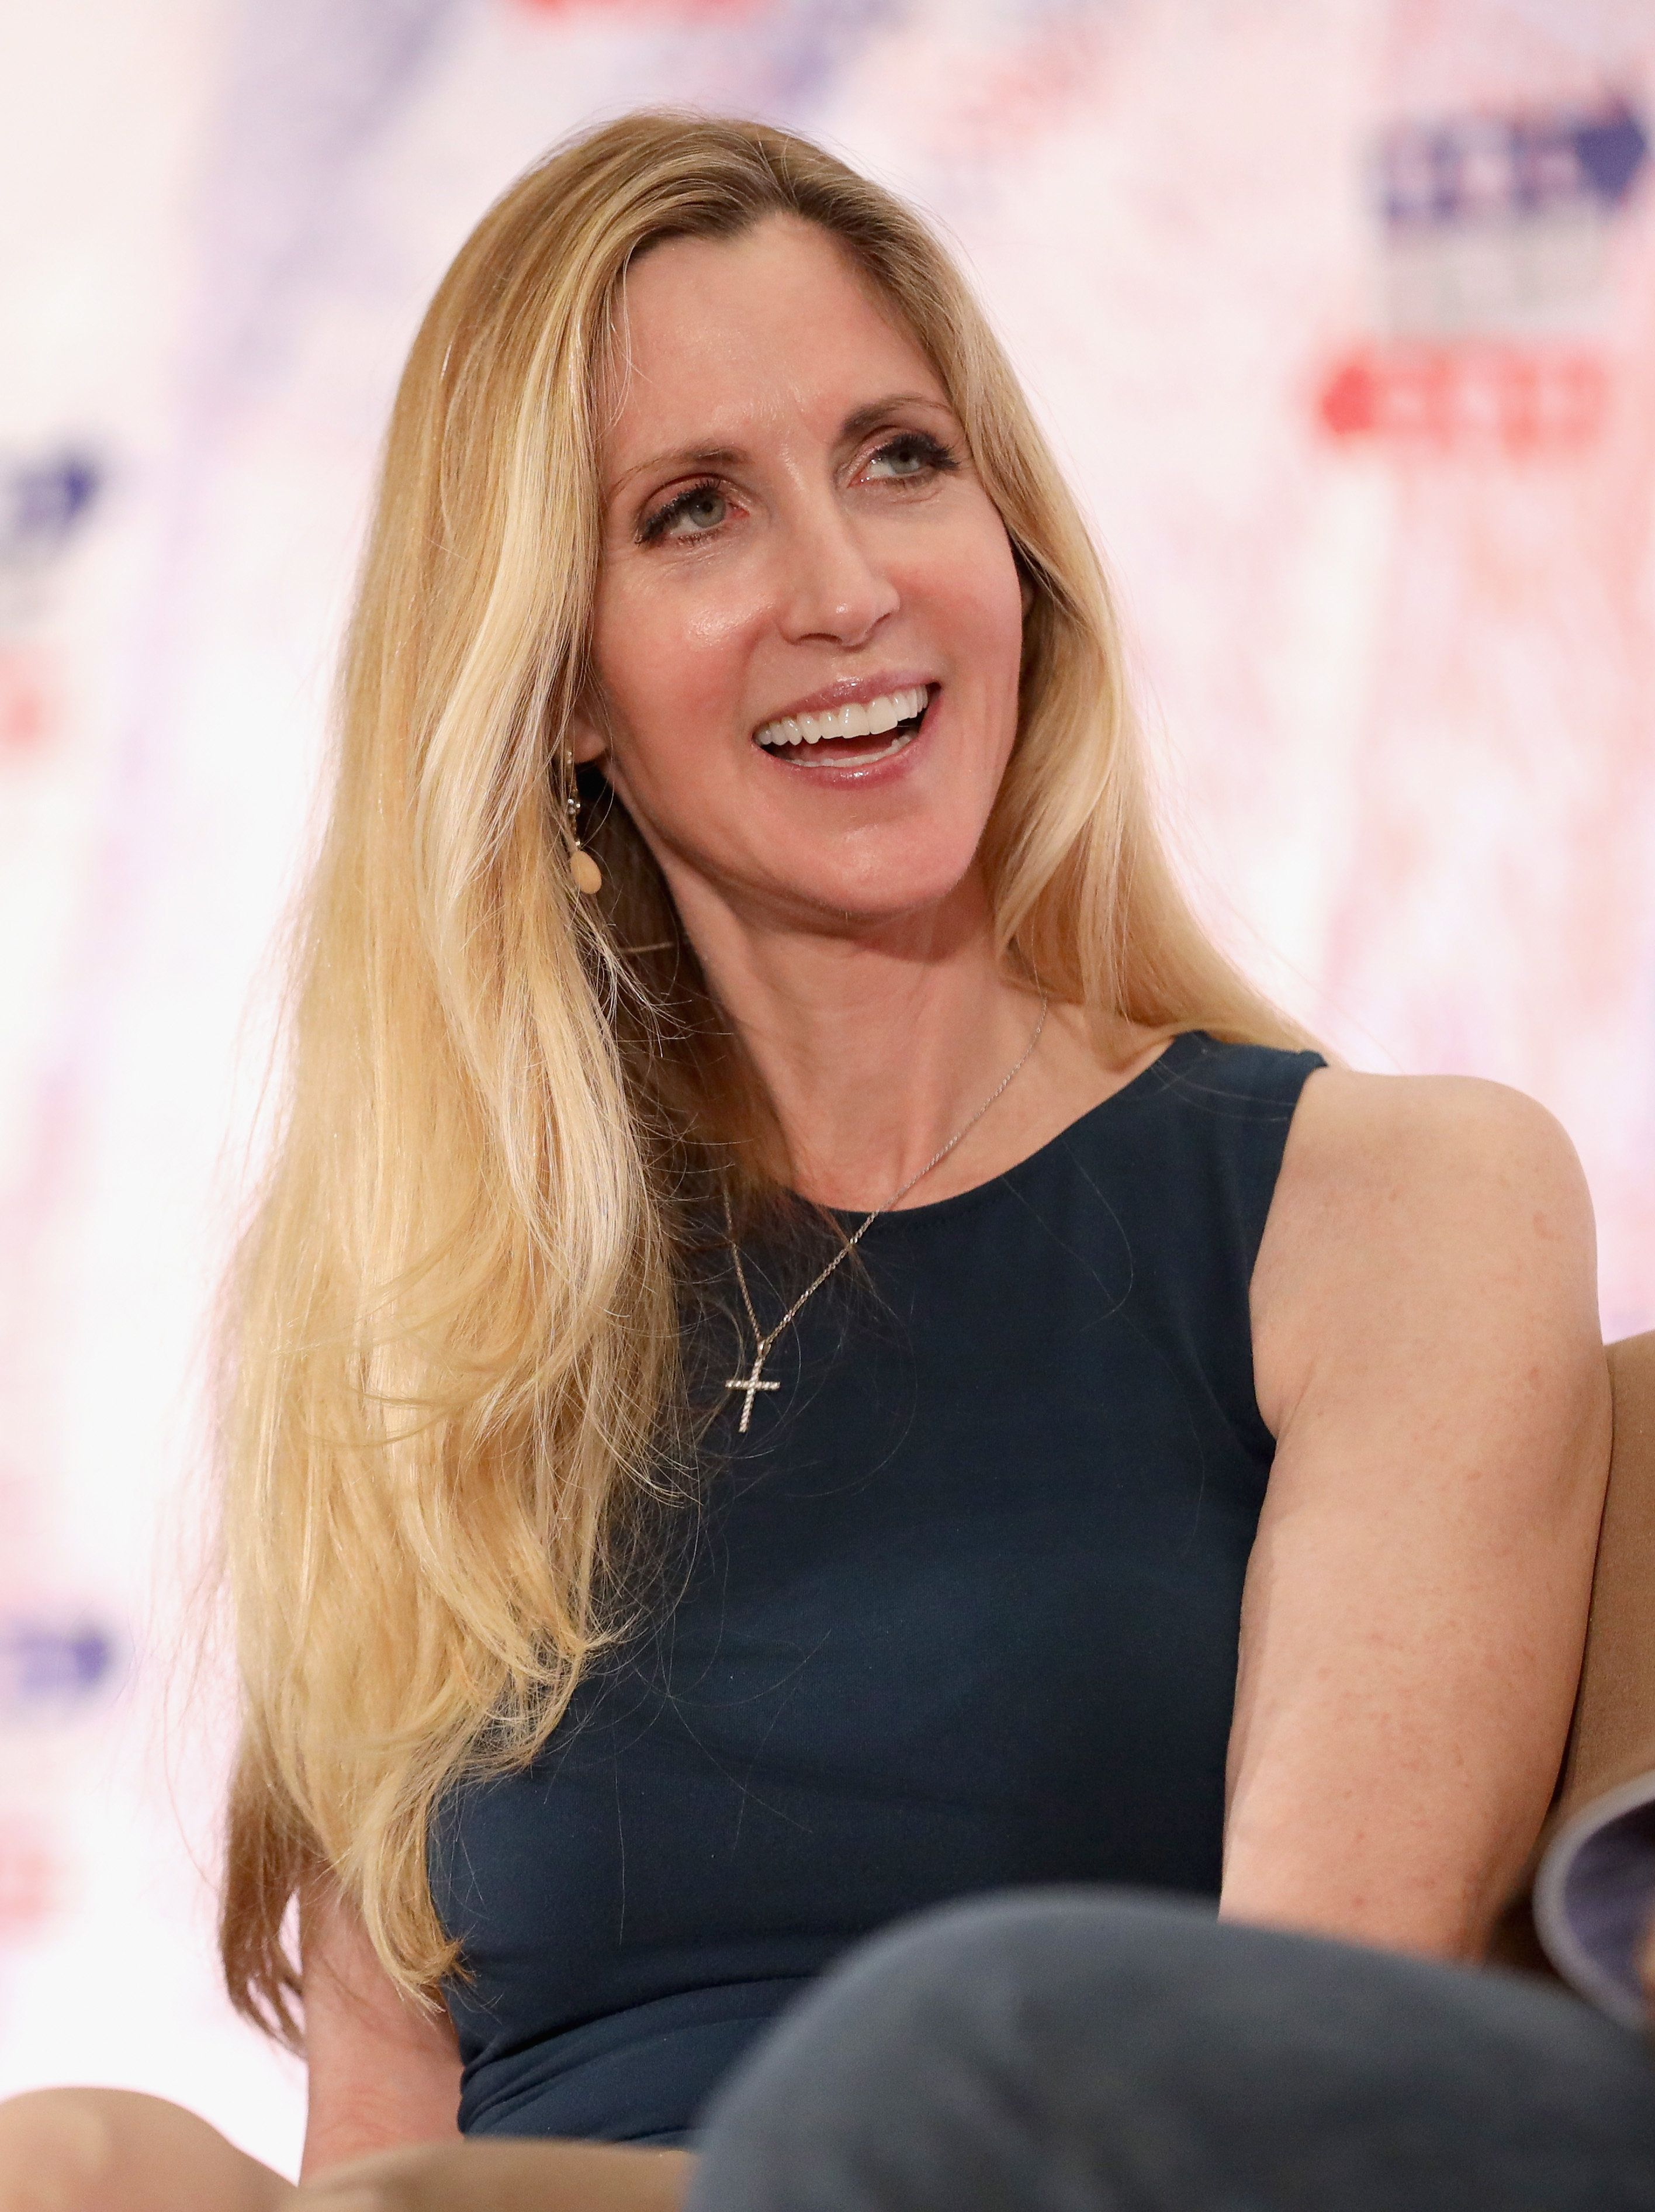 LOS ANGELES, CA - OCTOBER 20:  Ann Coulter speaks onstage during Politicon 2018 at Los Angeles Convention Center on October 20, 2018 in Los Angeles, California.  (Photo by Rich Polk/Getty Images for Politicon)